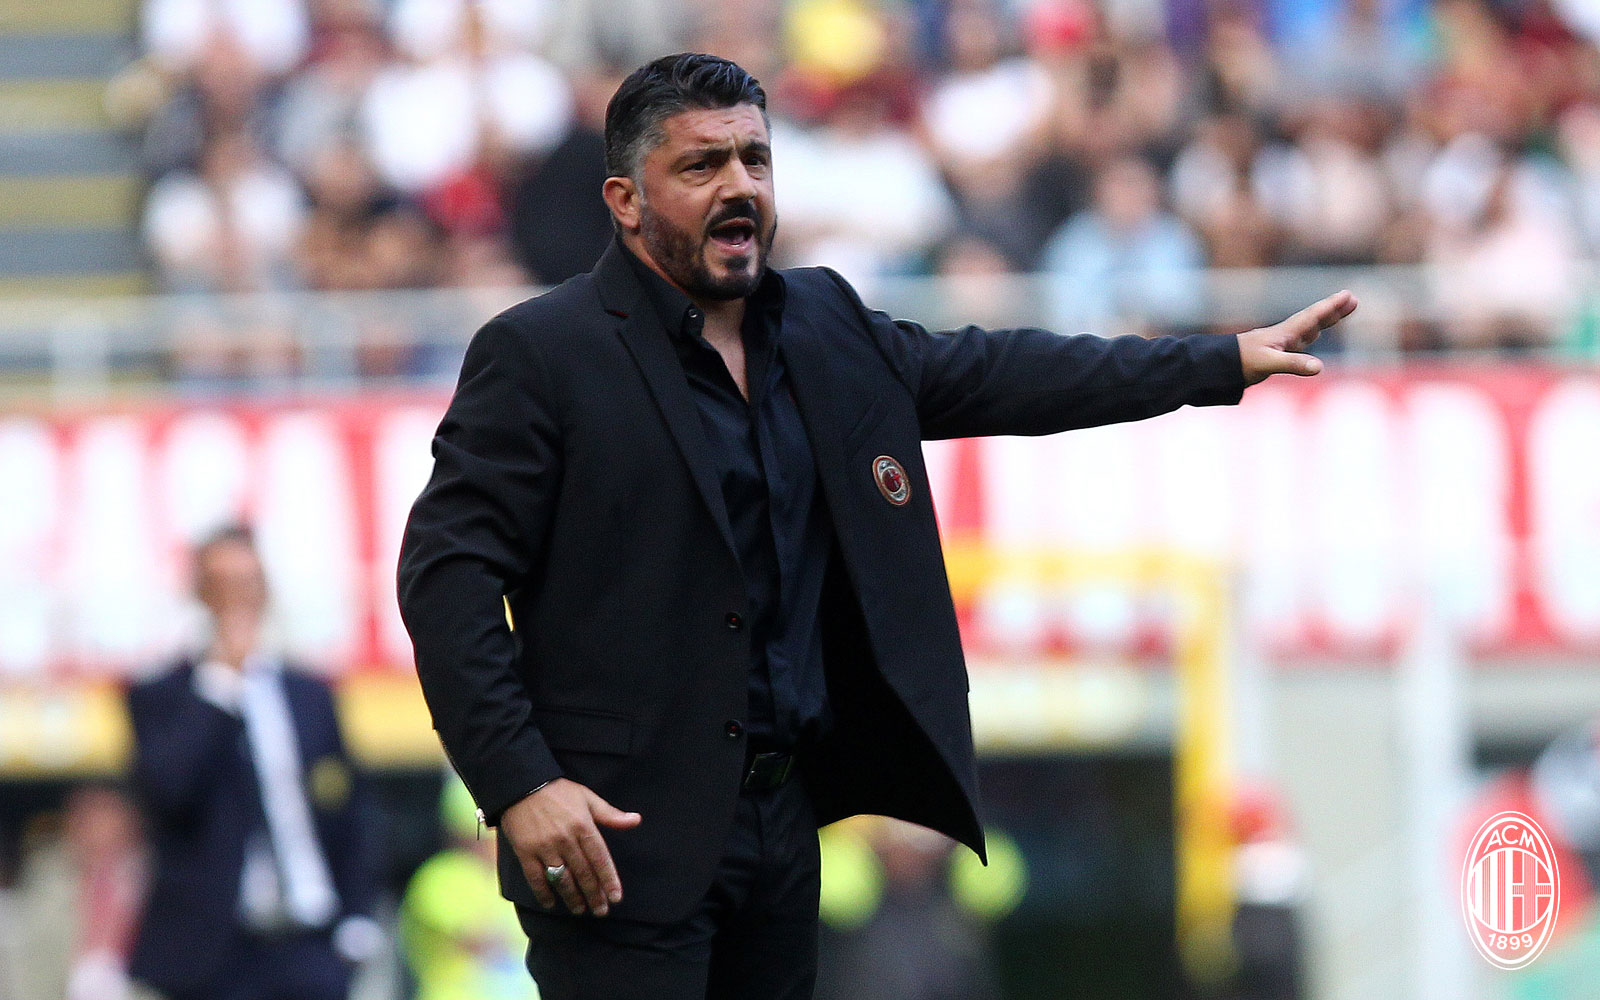 Gennaro Gattuso during Milan-Chievo at Stadio San Siro on October 7, 2018. (@acmilan.com)